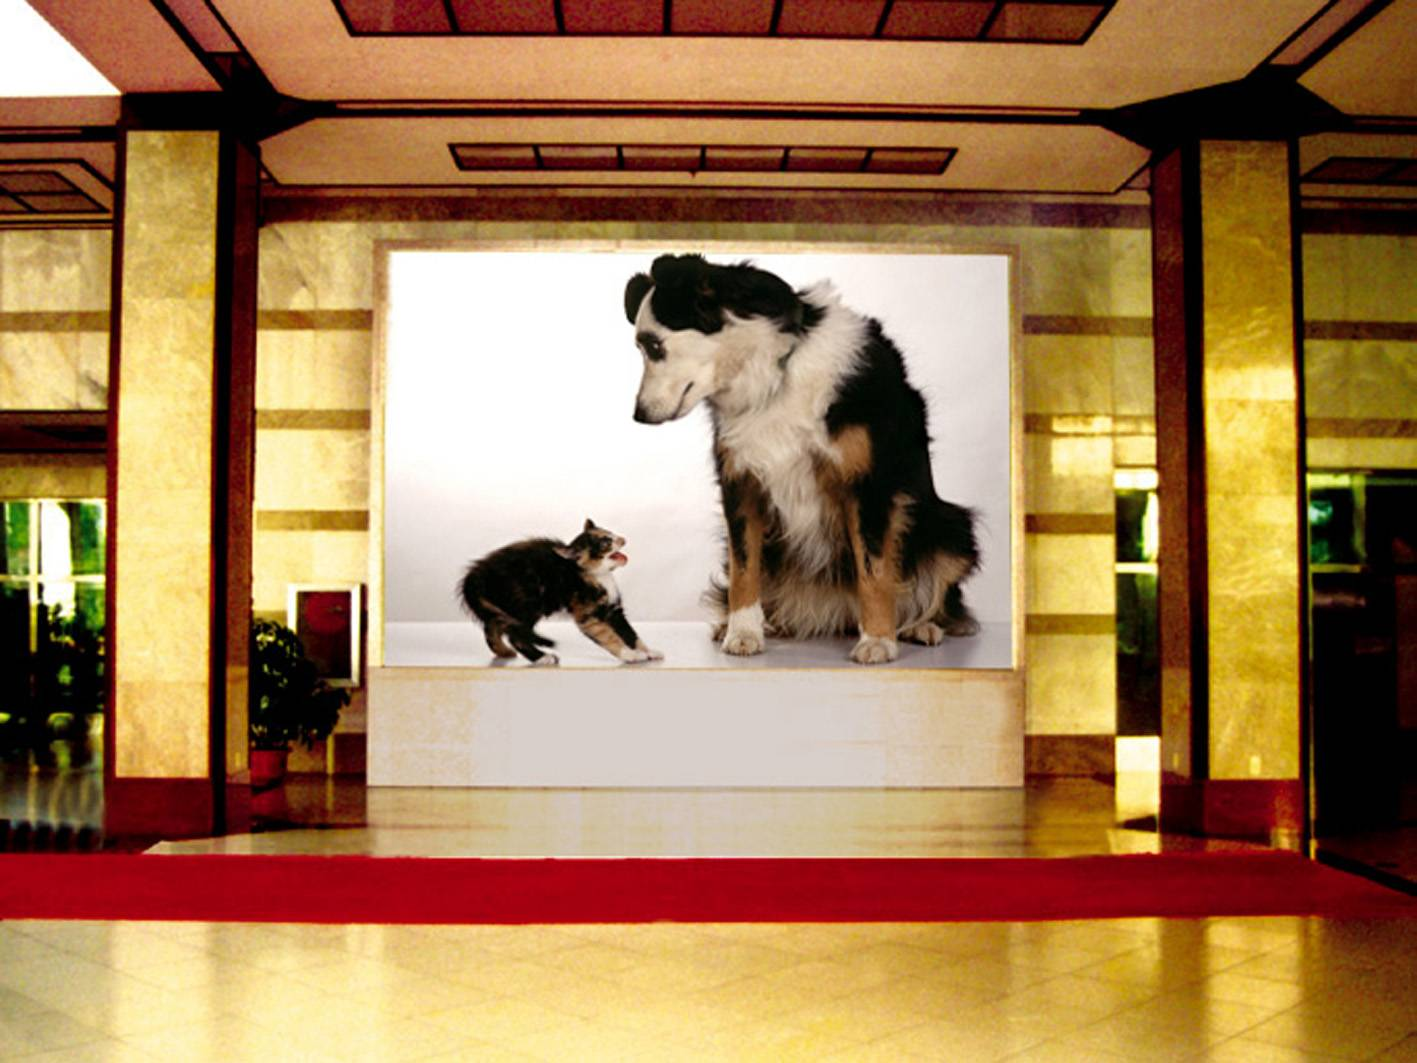 Full color p6 indoor led display screen